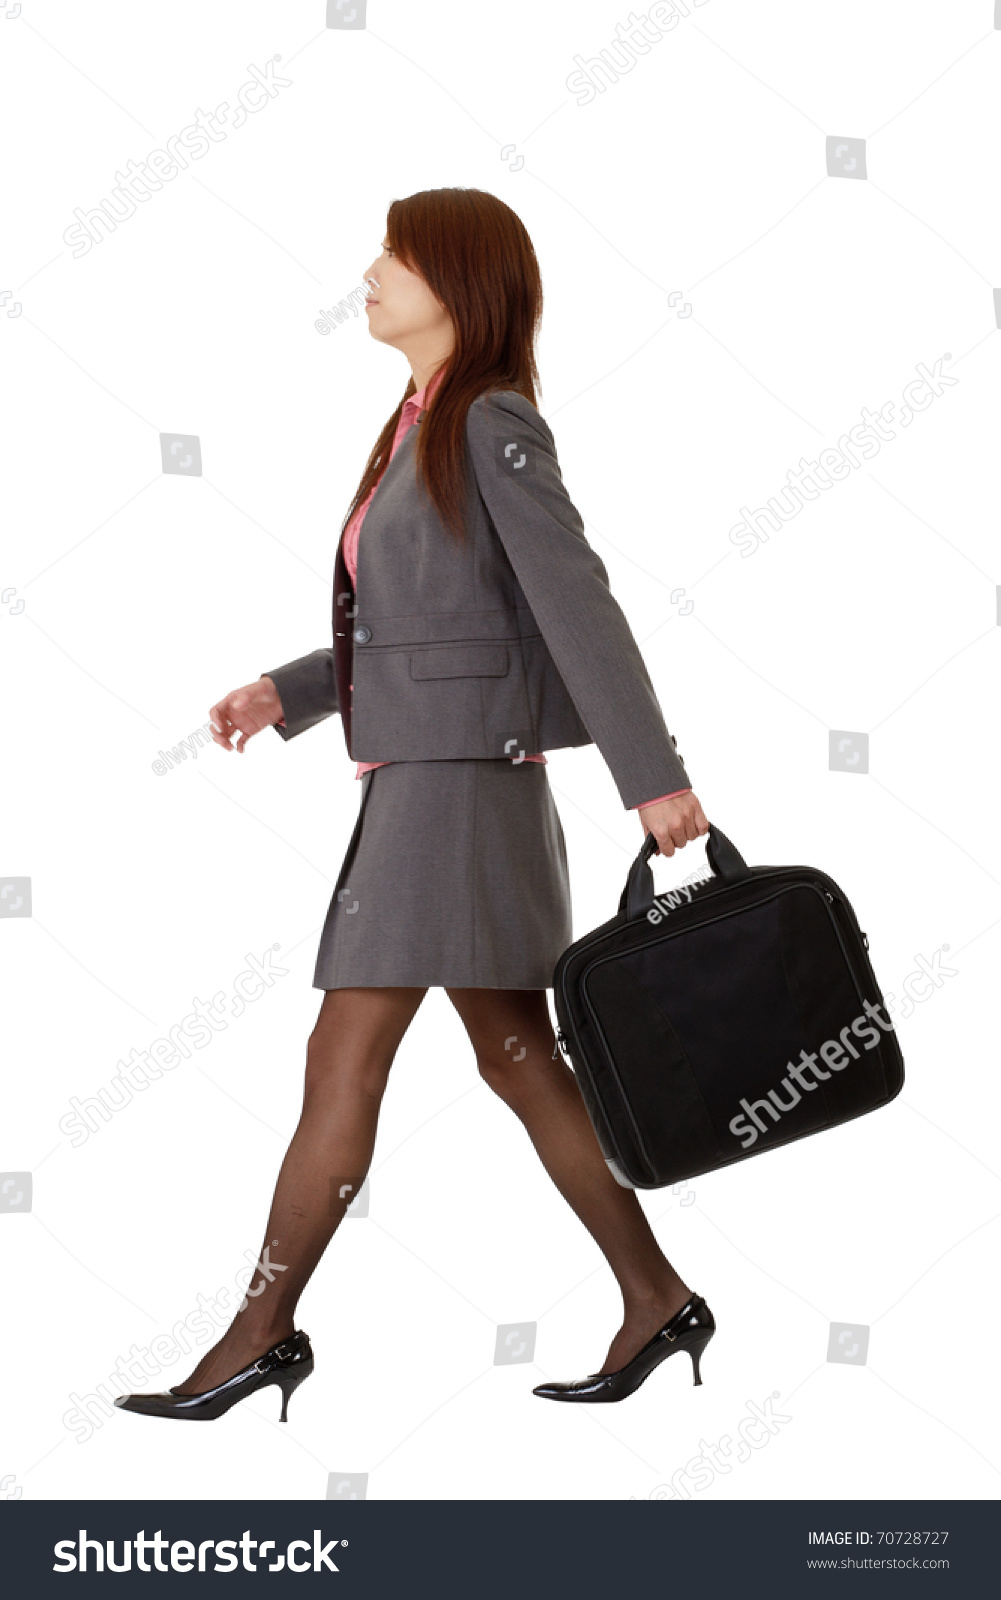 Business Woman Walking Full Length Pose Isolated On White